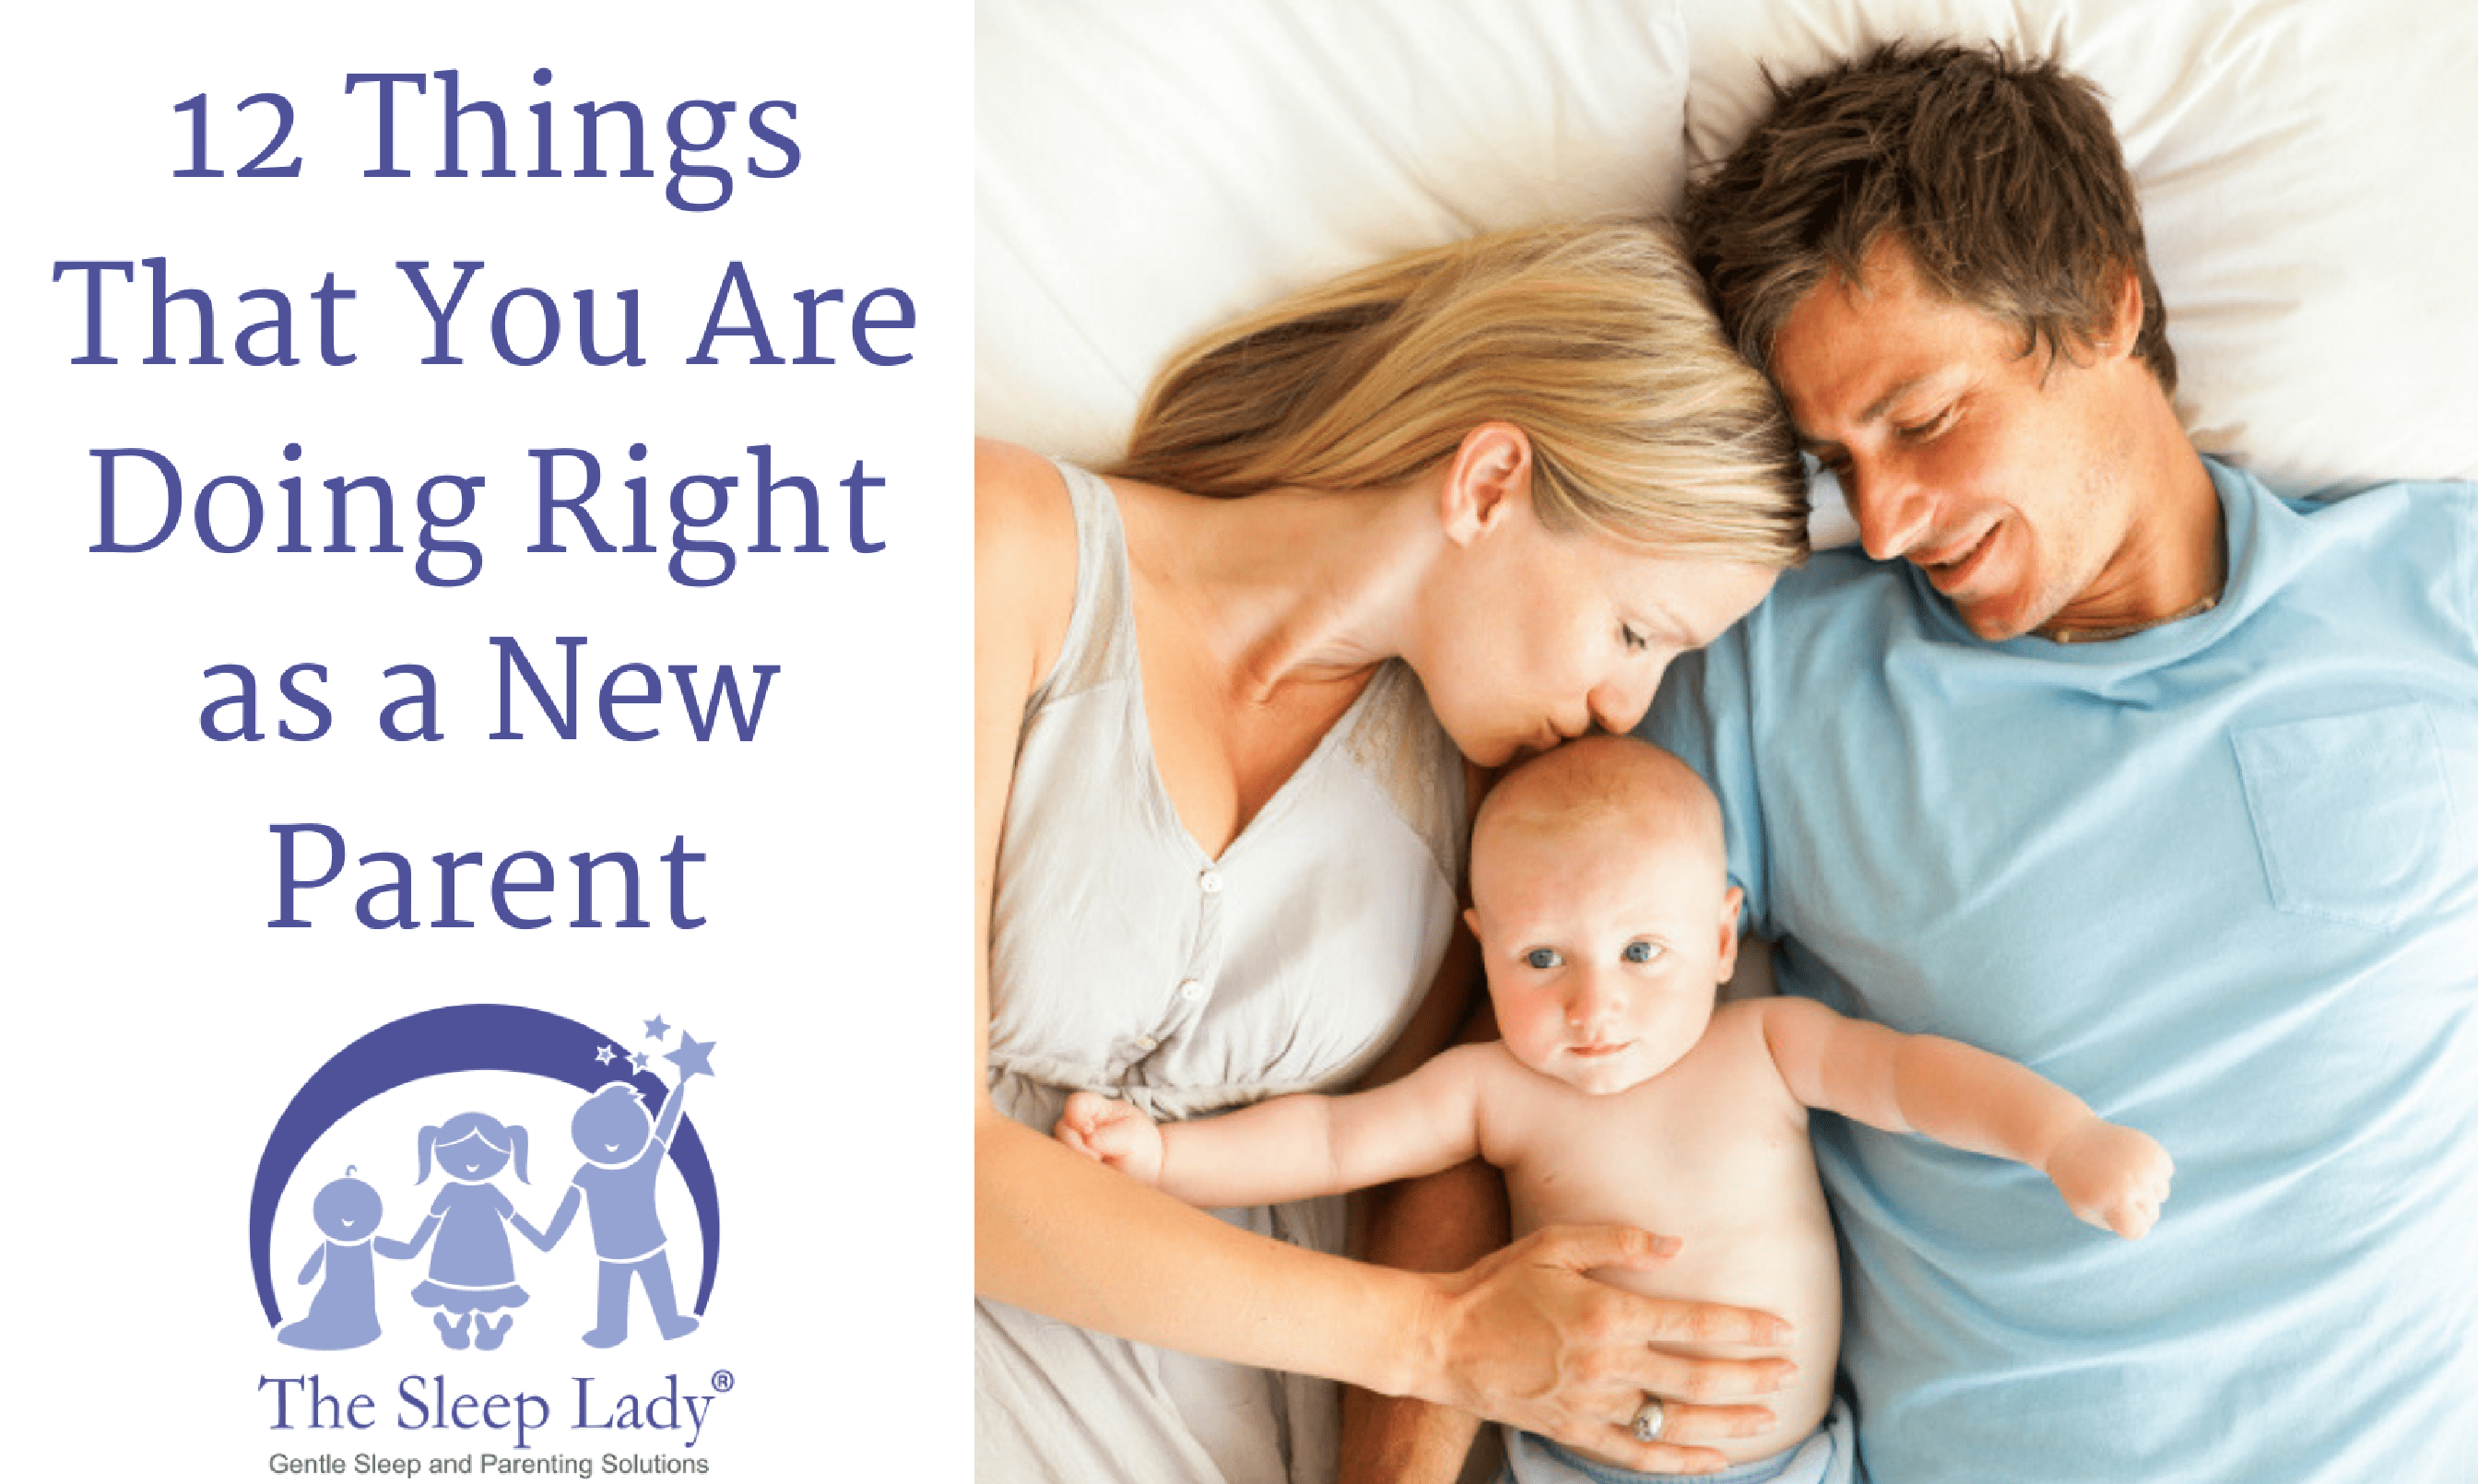 12-things-you-are-doing-right-as-a-new-parent